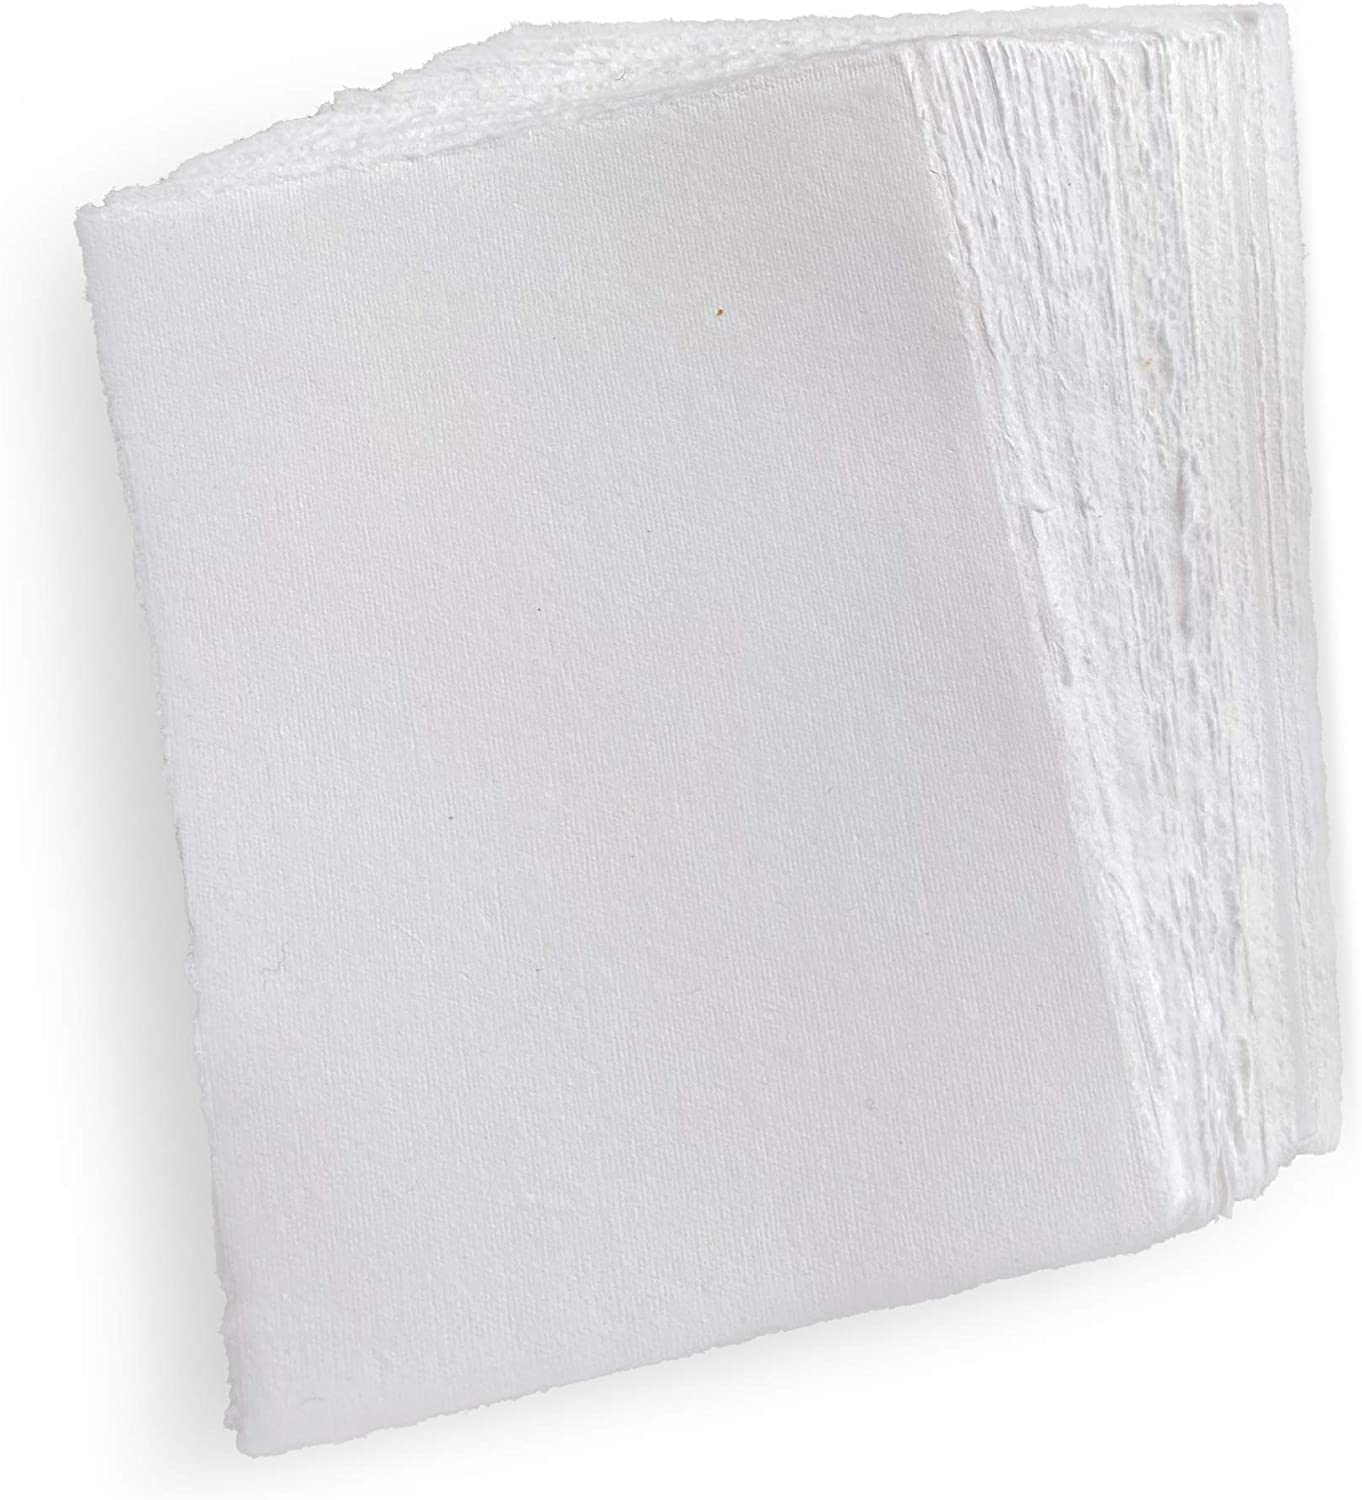 Wanderings Spasm price Handmade White Deckle Edge Free Shipping New Blank A4 Size Pack Paper -